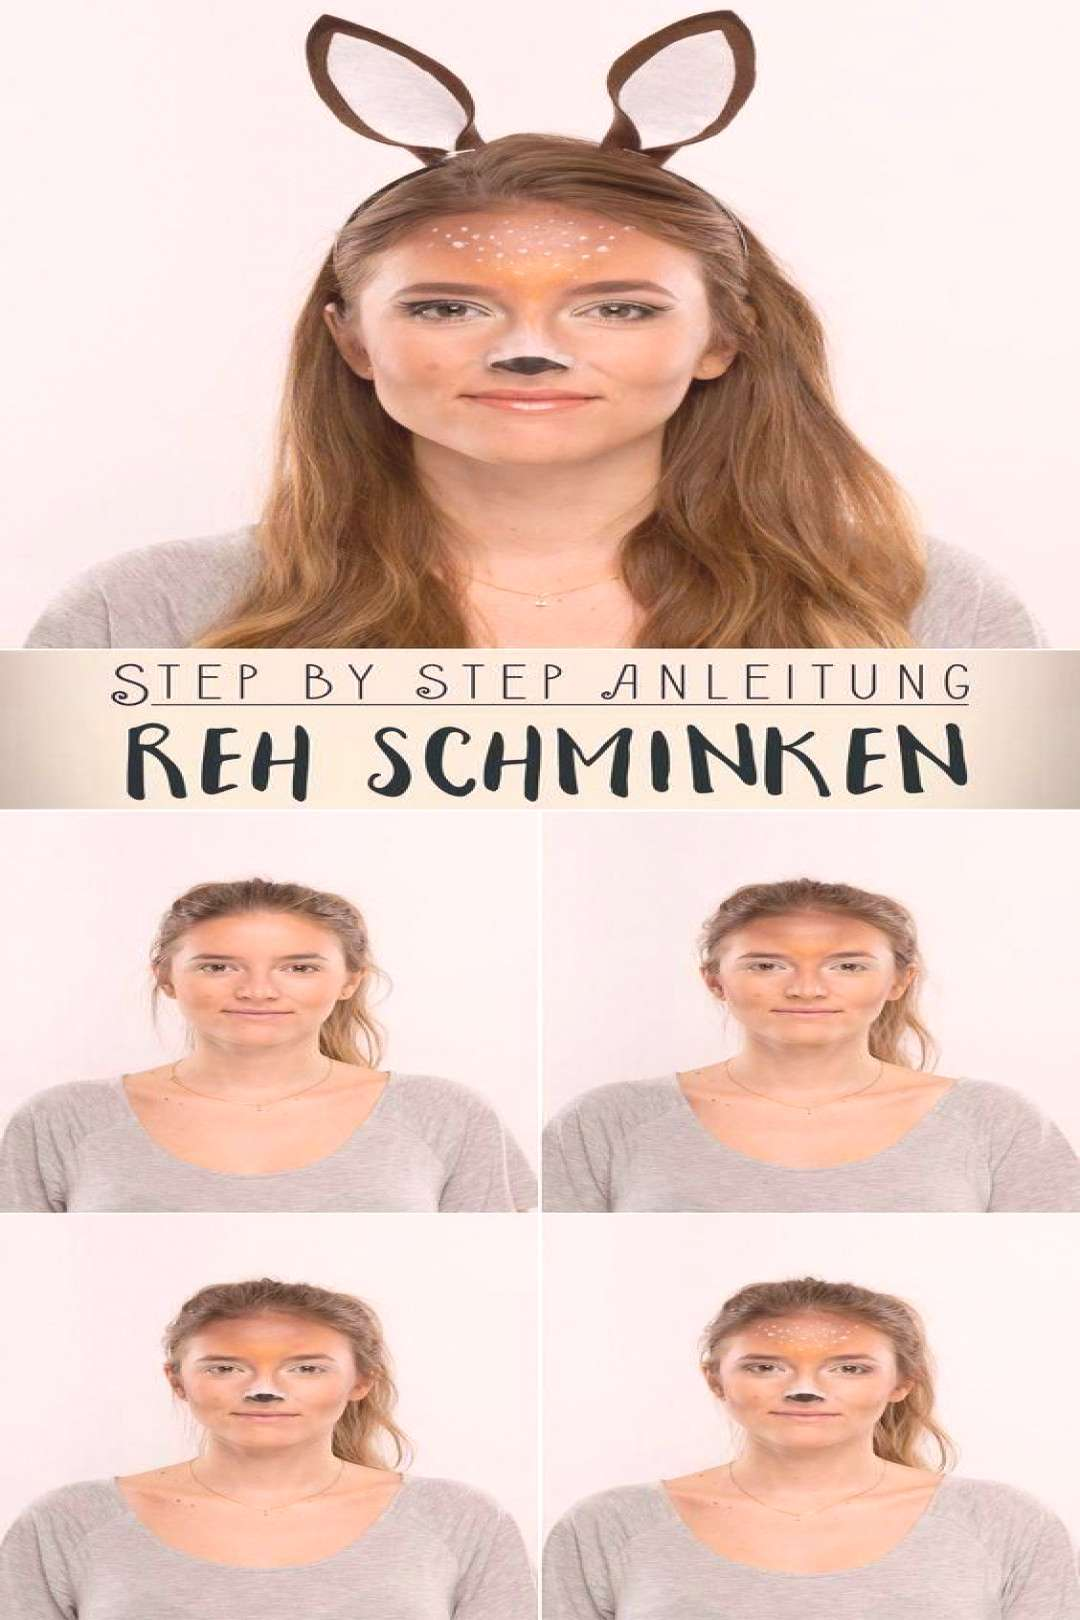 Reh schminken Step by Step